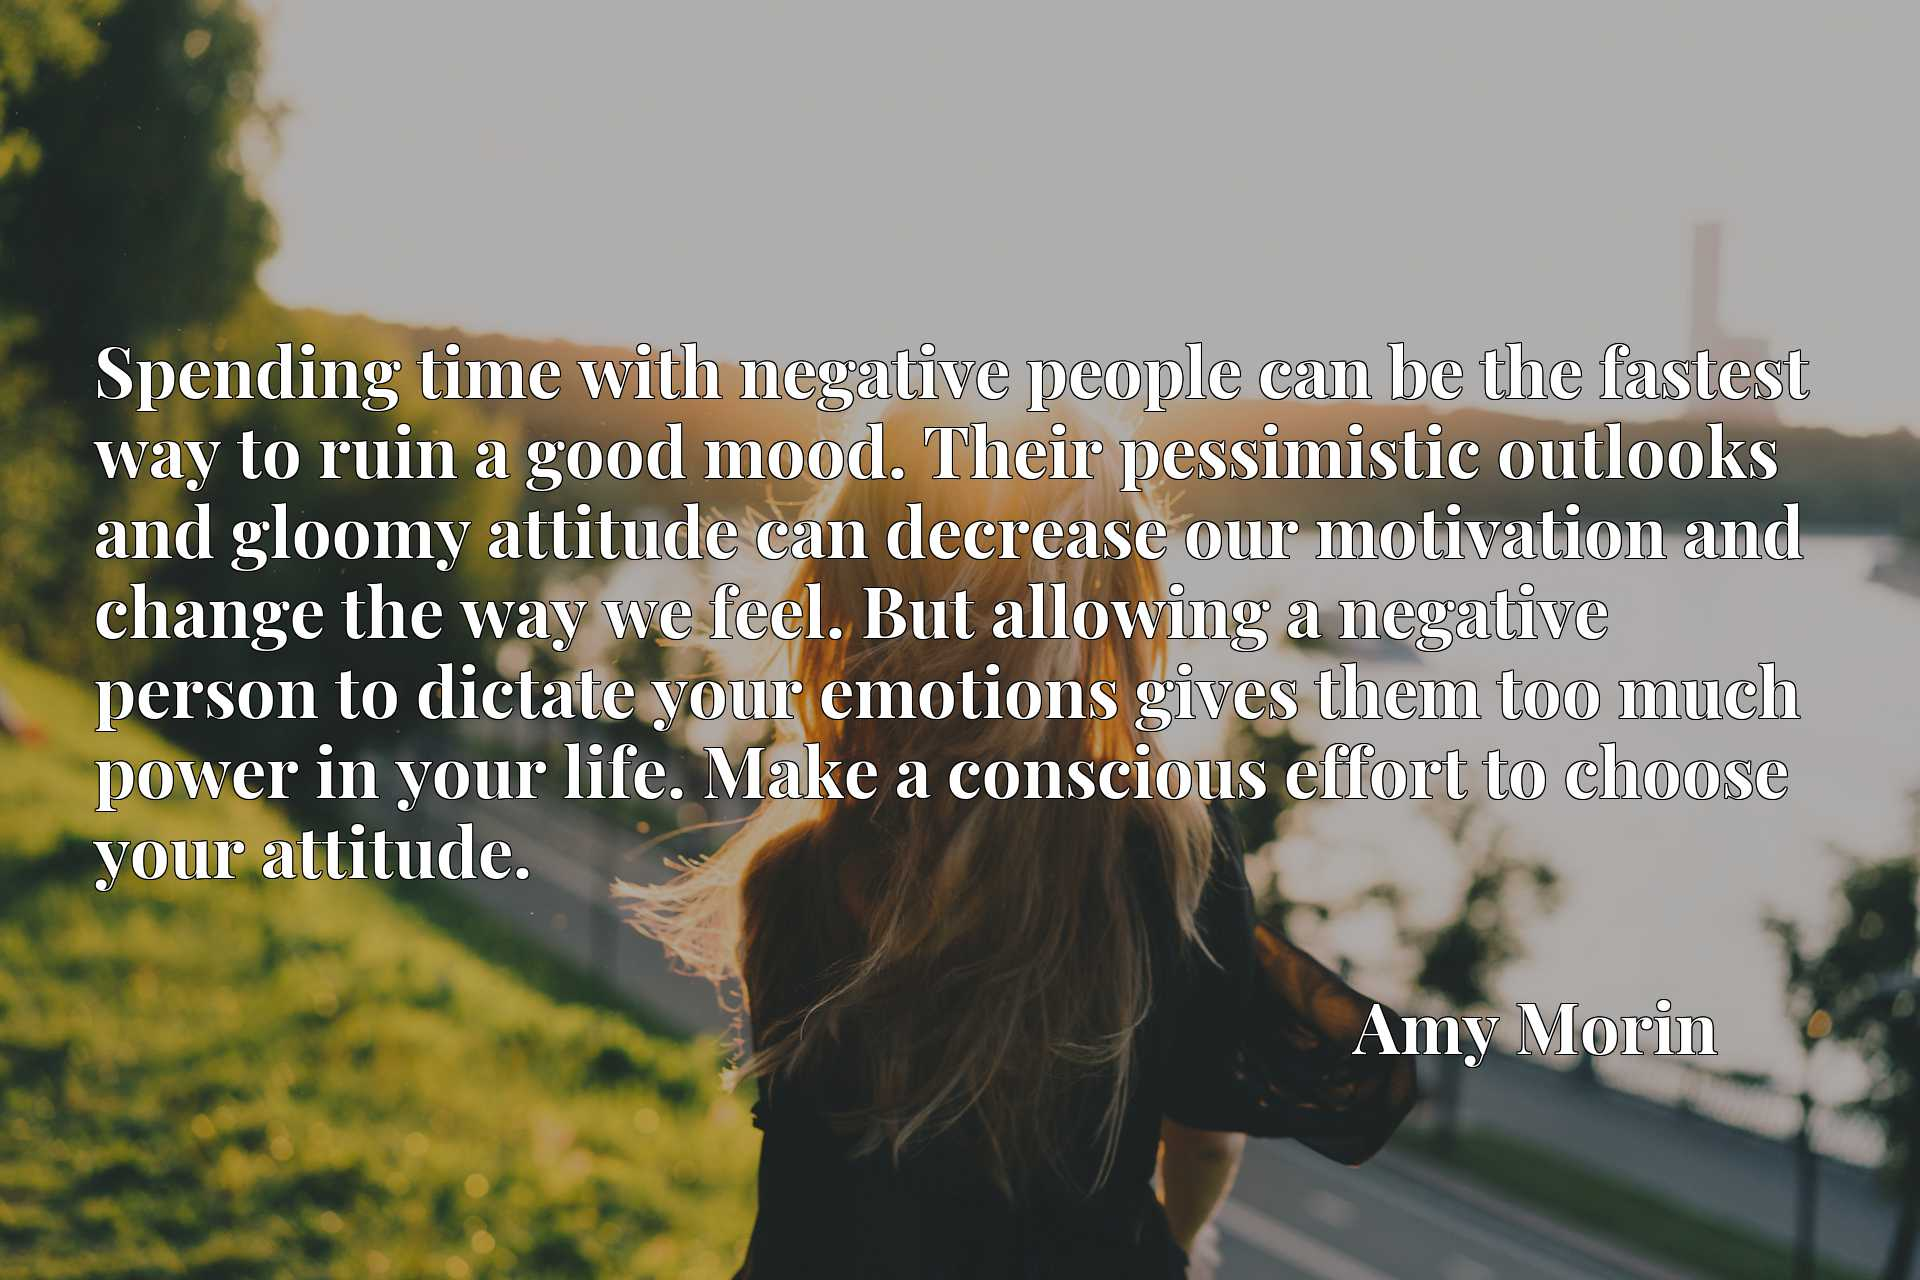 Spending time with negative people can be the fastest way to ruin a good mood. Their pessimistic outlooks and gloomy attitude can decrease our motivation and change the way we feel. But allowing a negative person to dictate your emotions gives them too much power in your life. Make a conscious effort to choose your attitude.